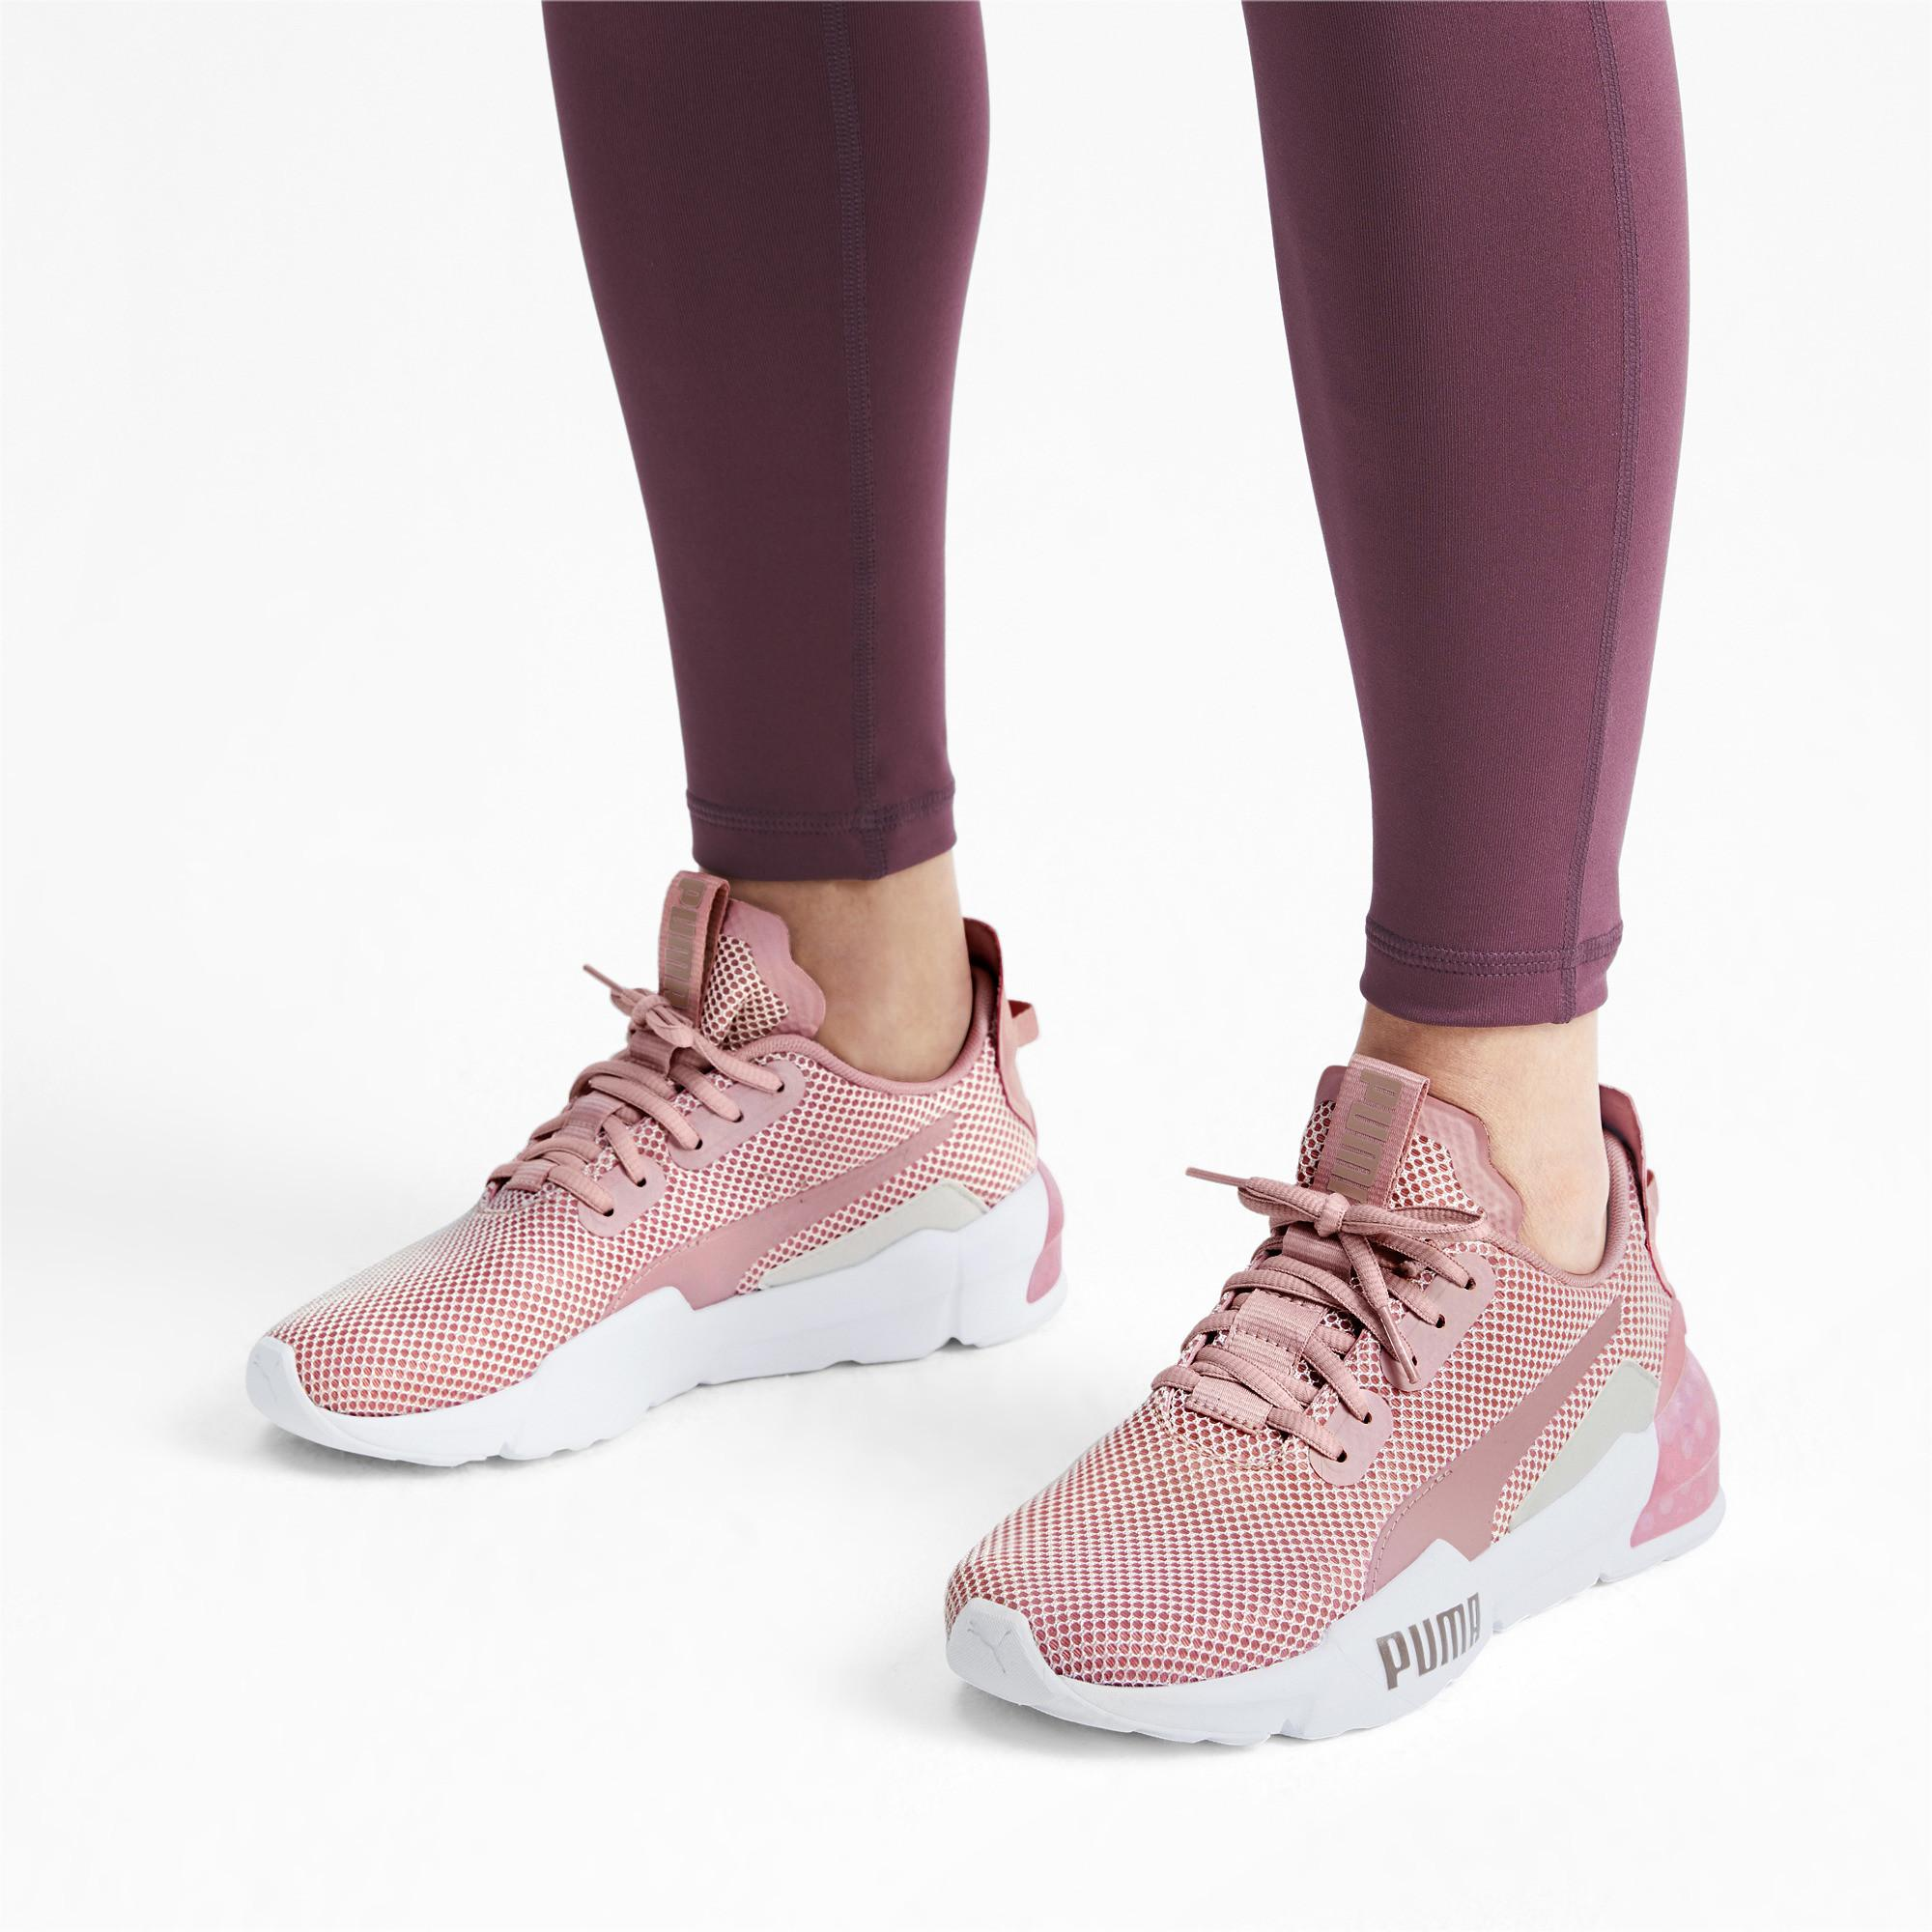 PUMA Rubber Cell Phase Women's Training